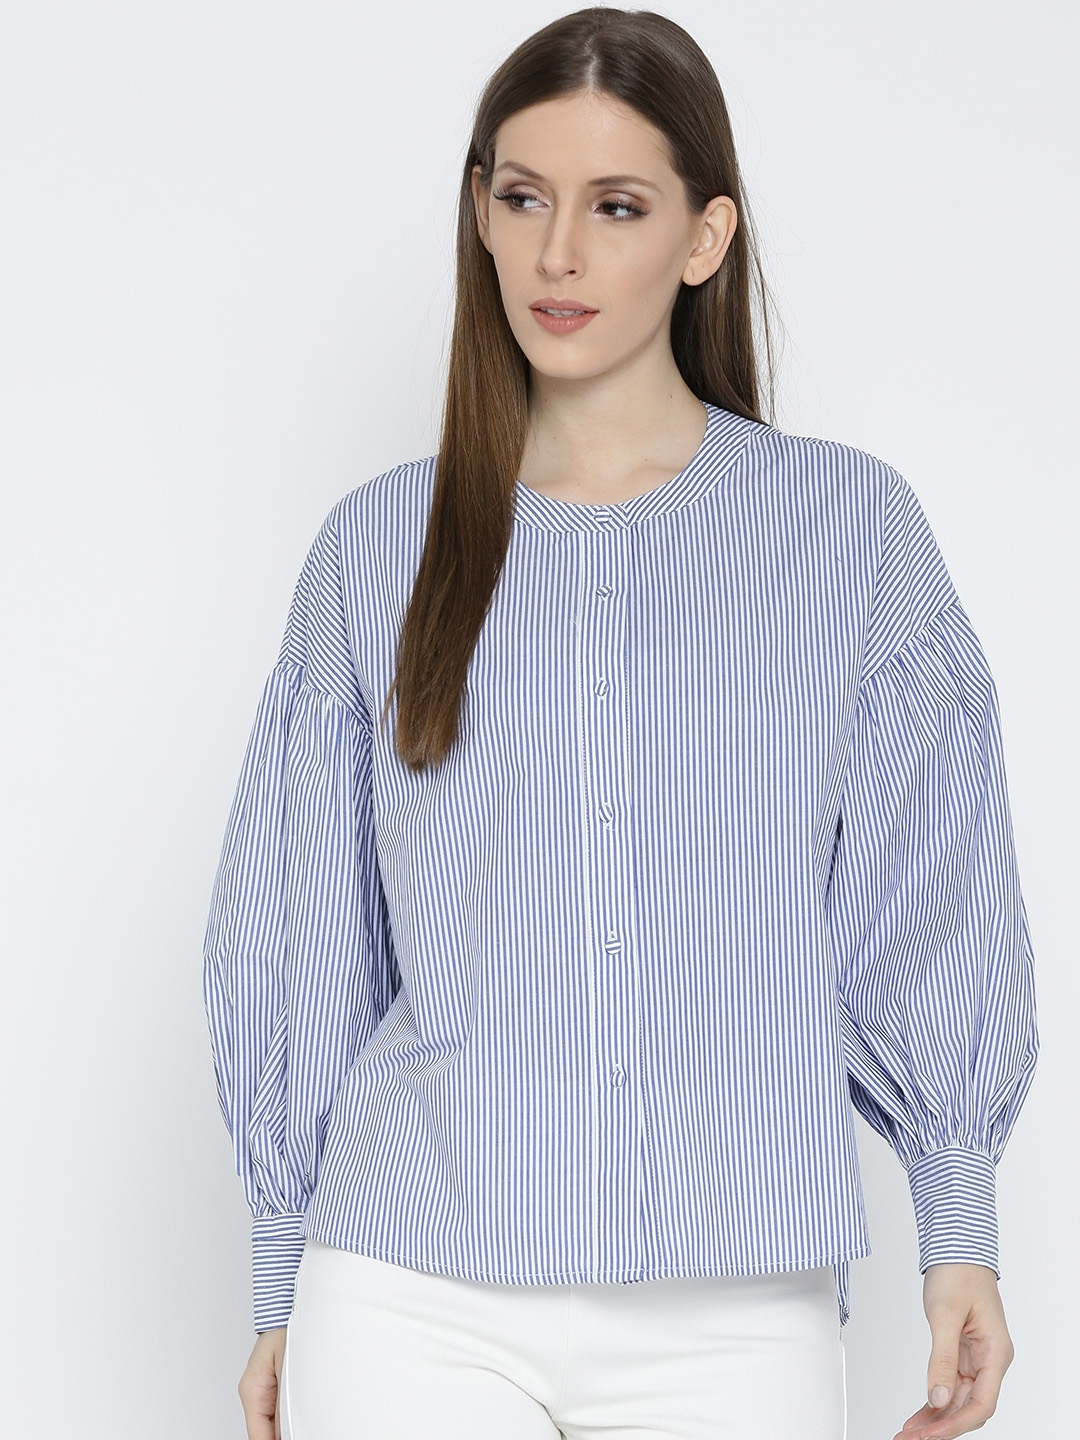 567fb77a98 Buy MANGO Women Blue & White Striped Shirt Style Top - Tops for ...